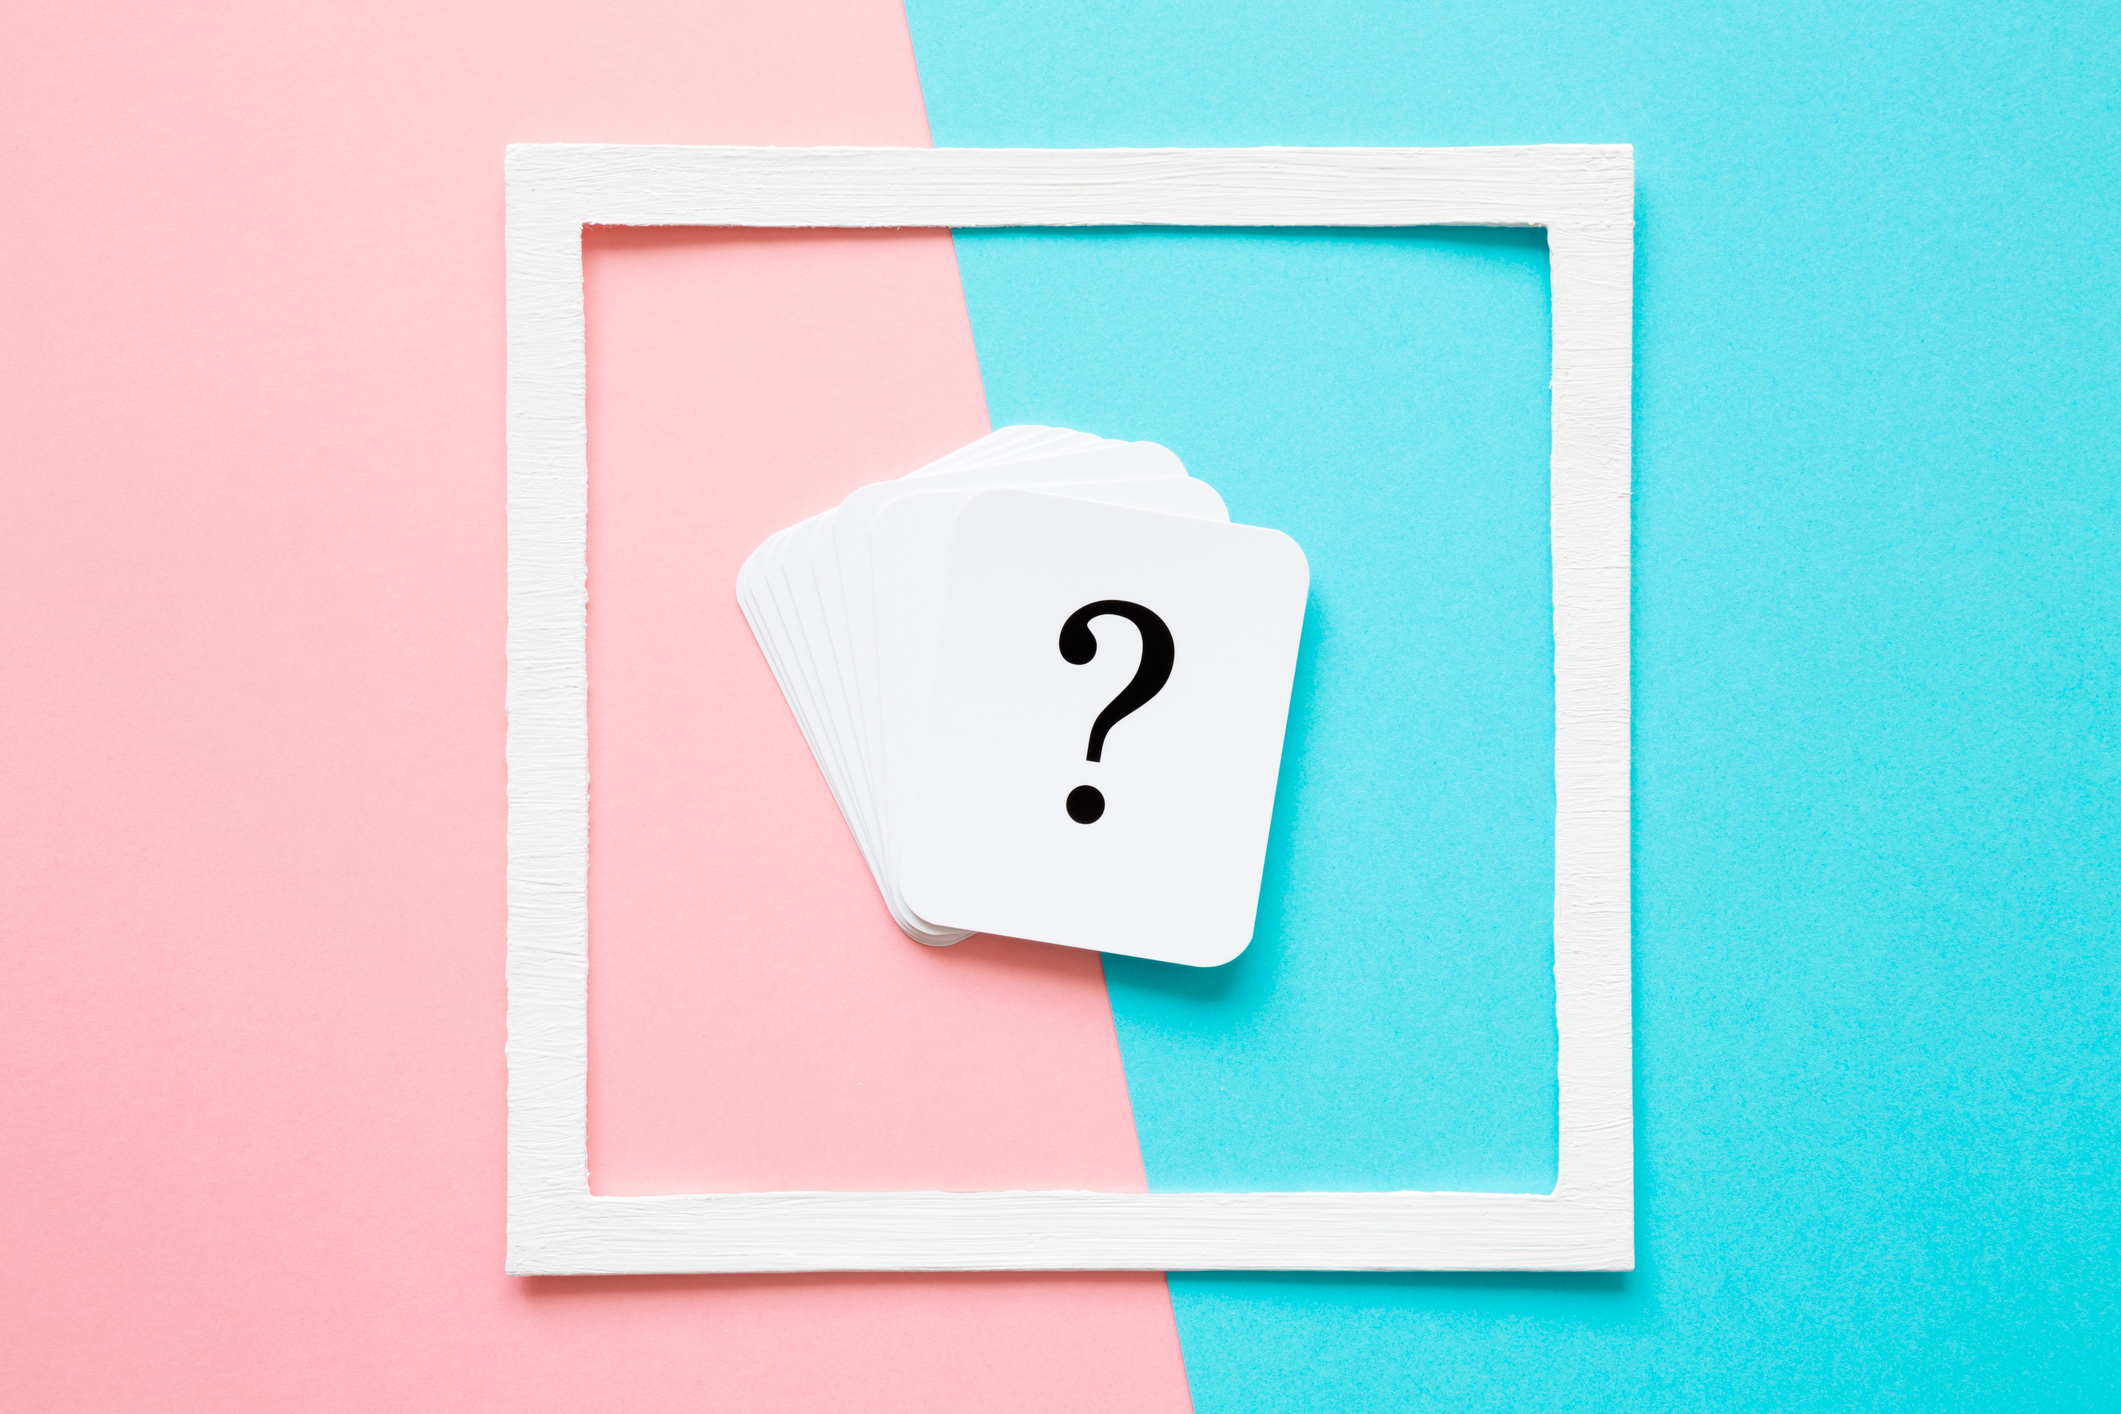 6 Interview Questions to Help Relax a Candidate